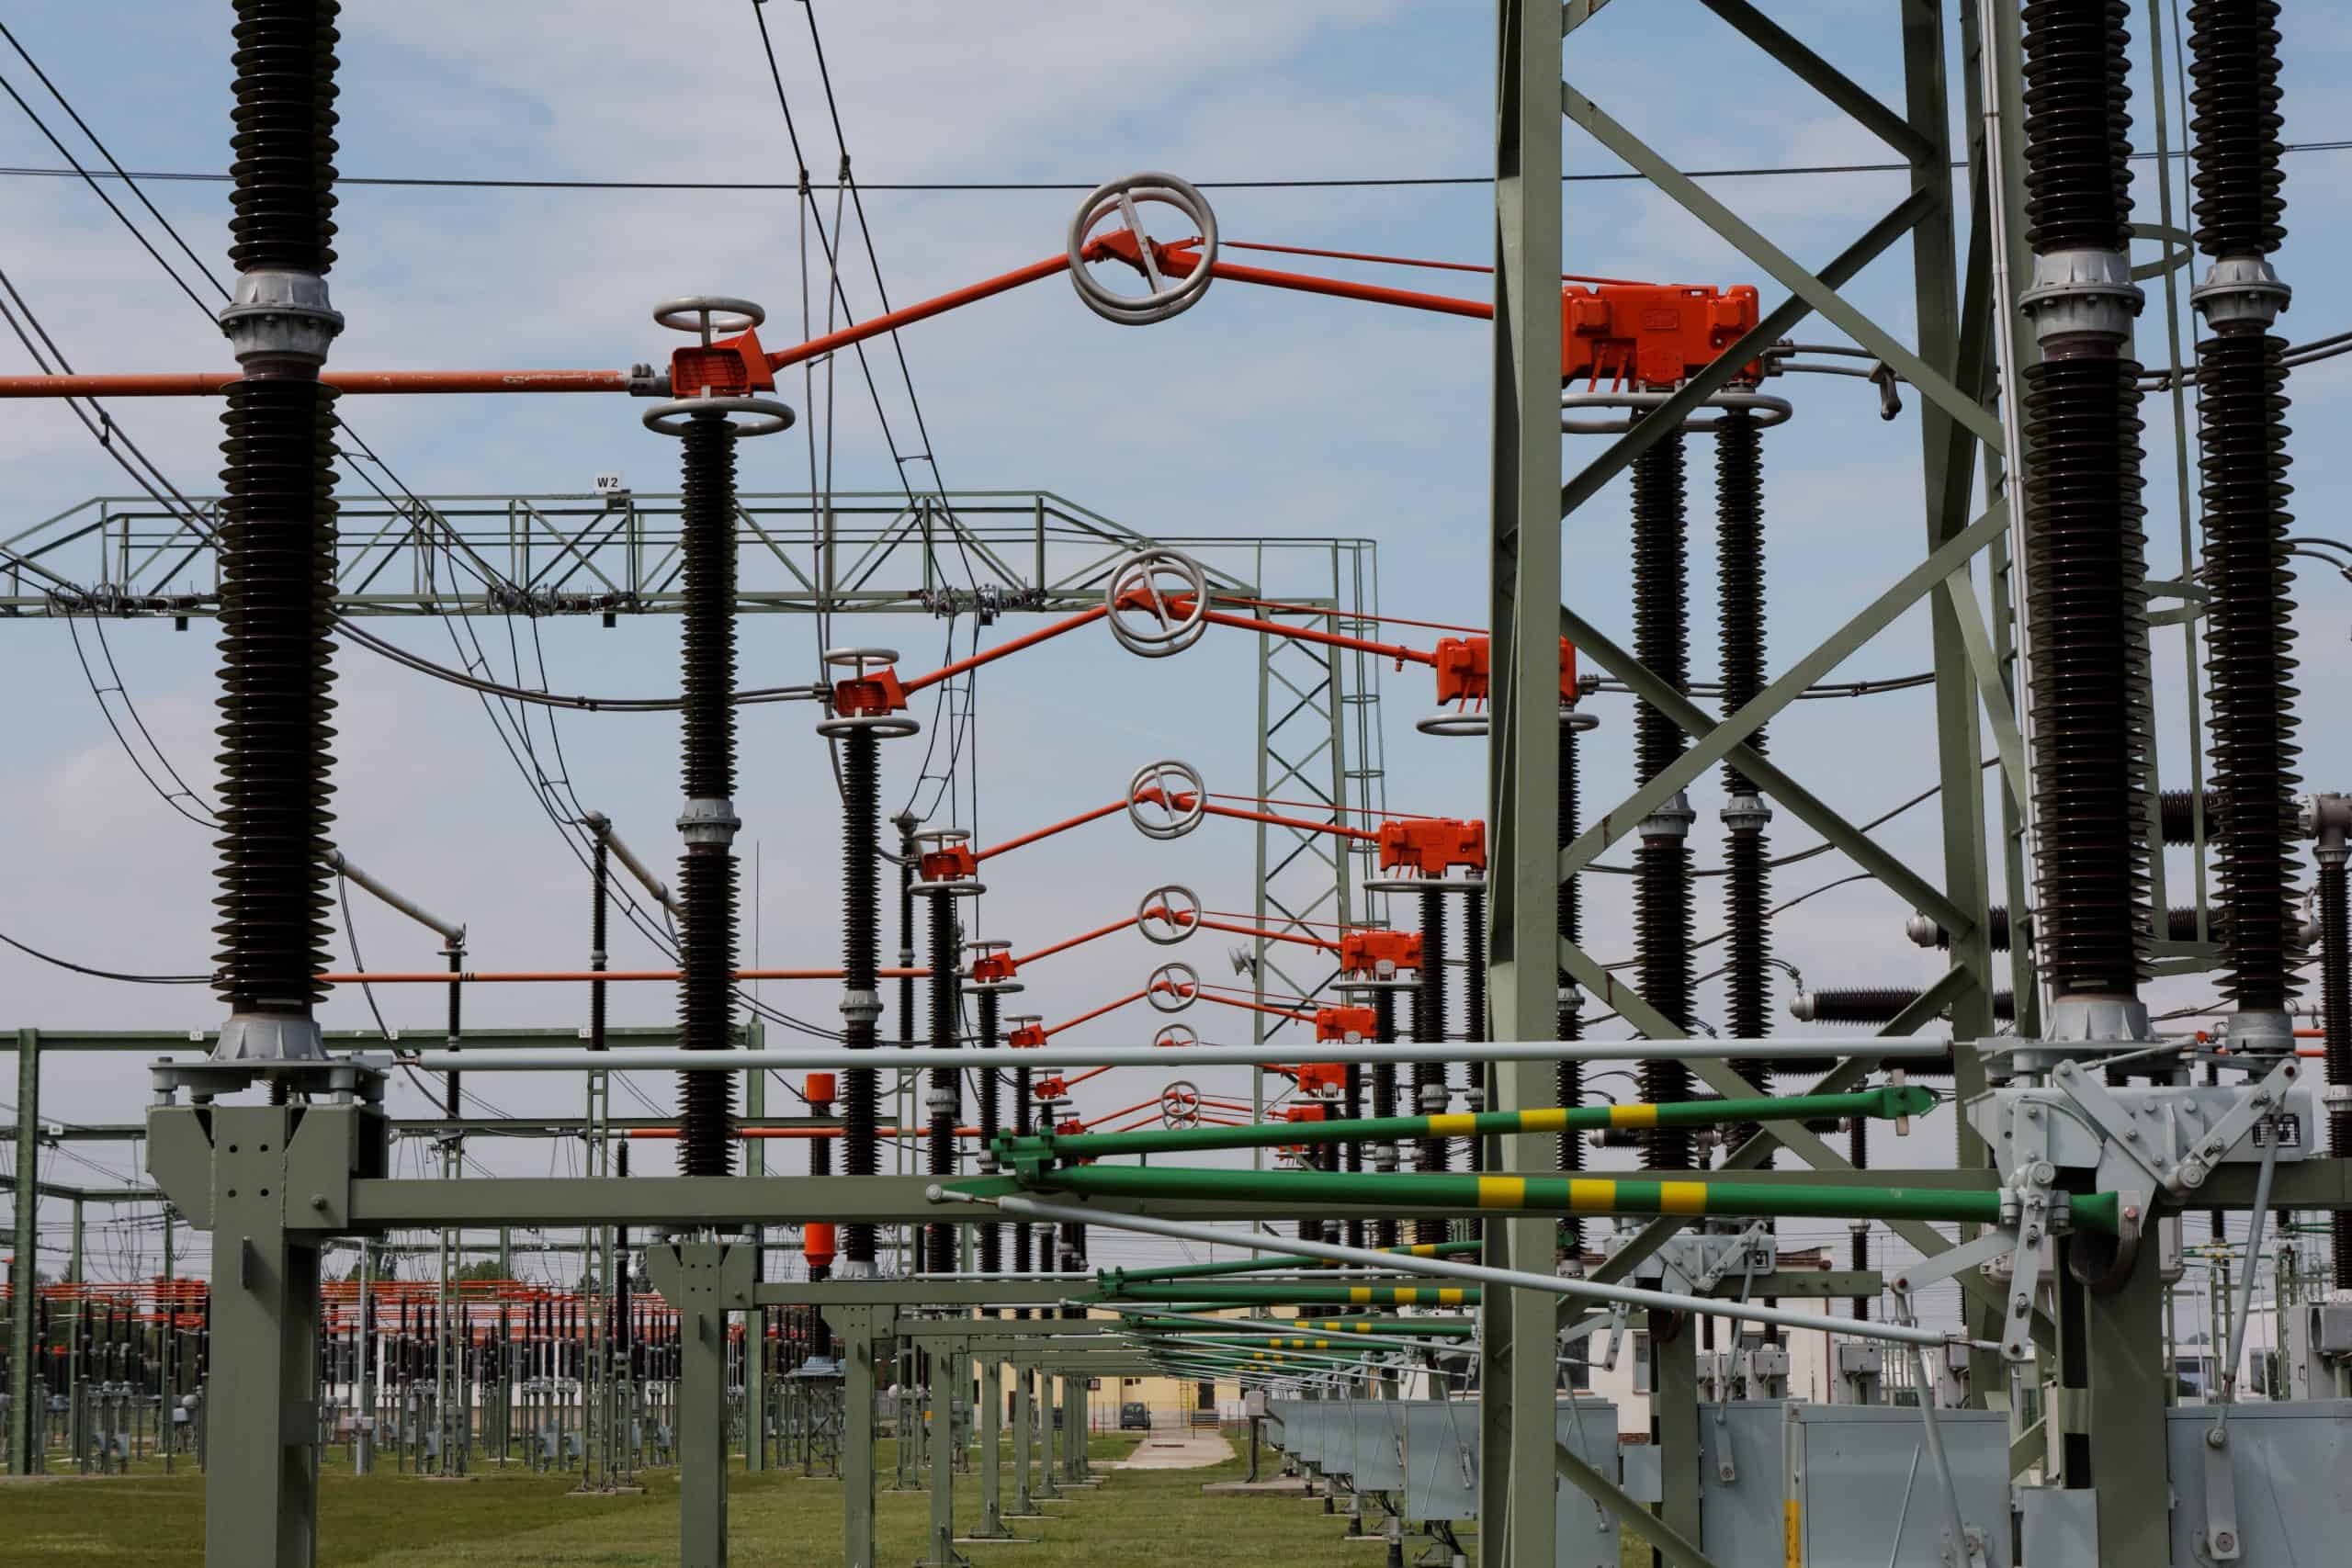 Substation with switches